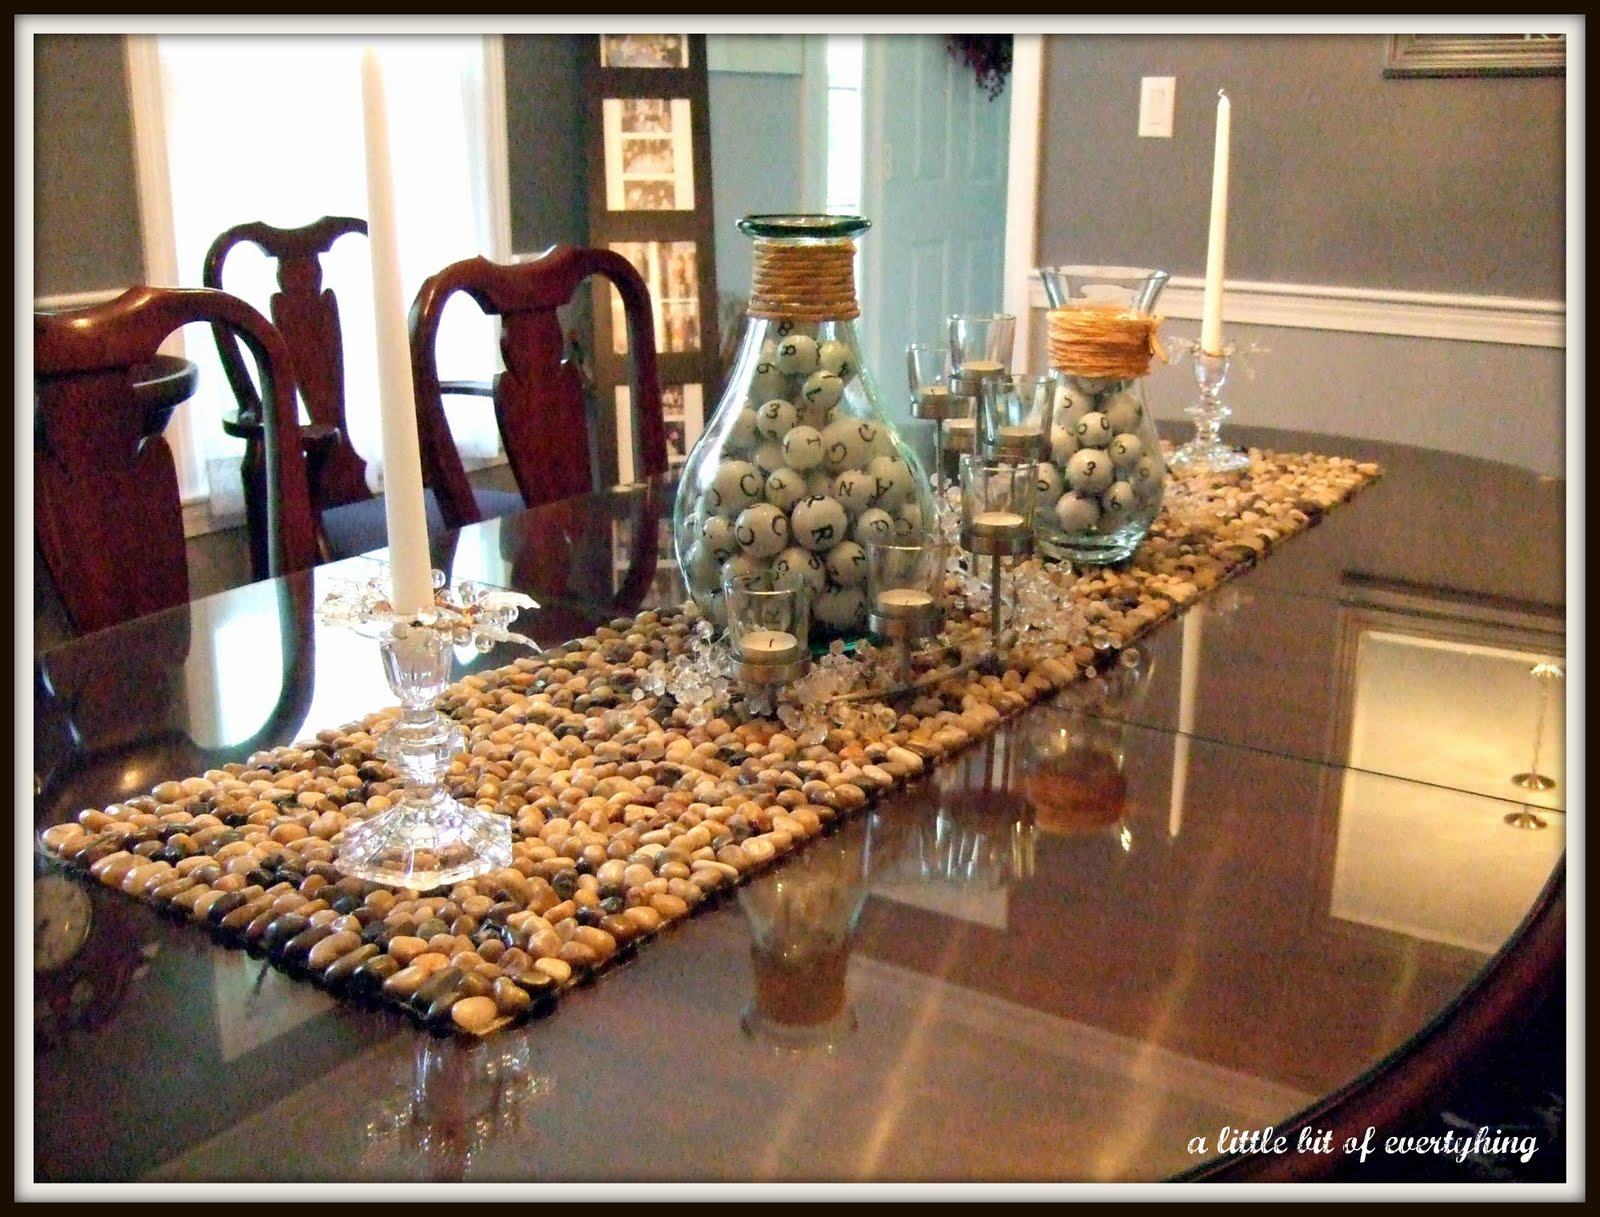 dining room table settings | a little bit of everything: Table Setting: Dining Room ...